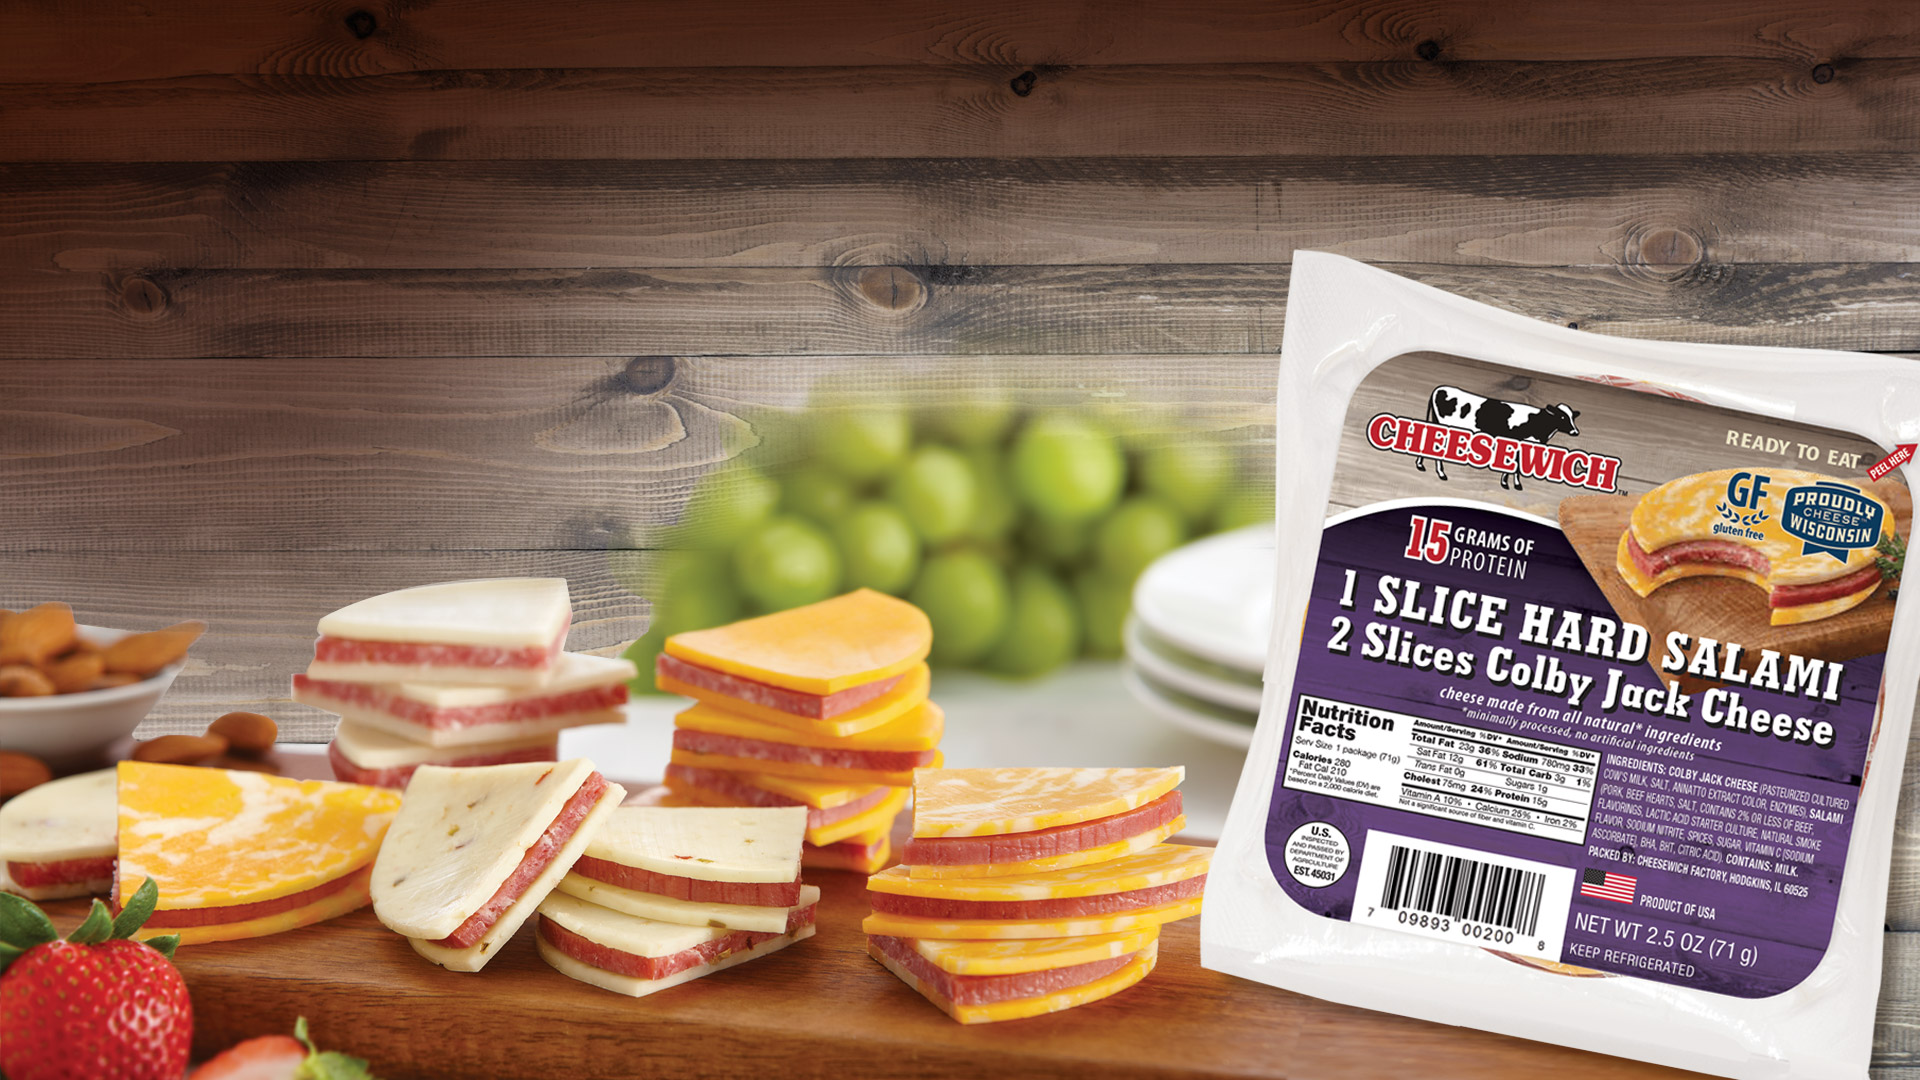 glamour image of product outside of package, slice of cheese and salami no bread sandwiches and 1 package of Colby Jack Cheesewich flavor